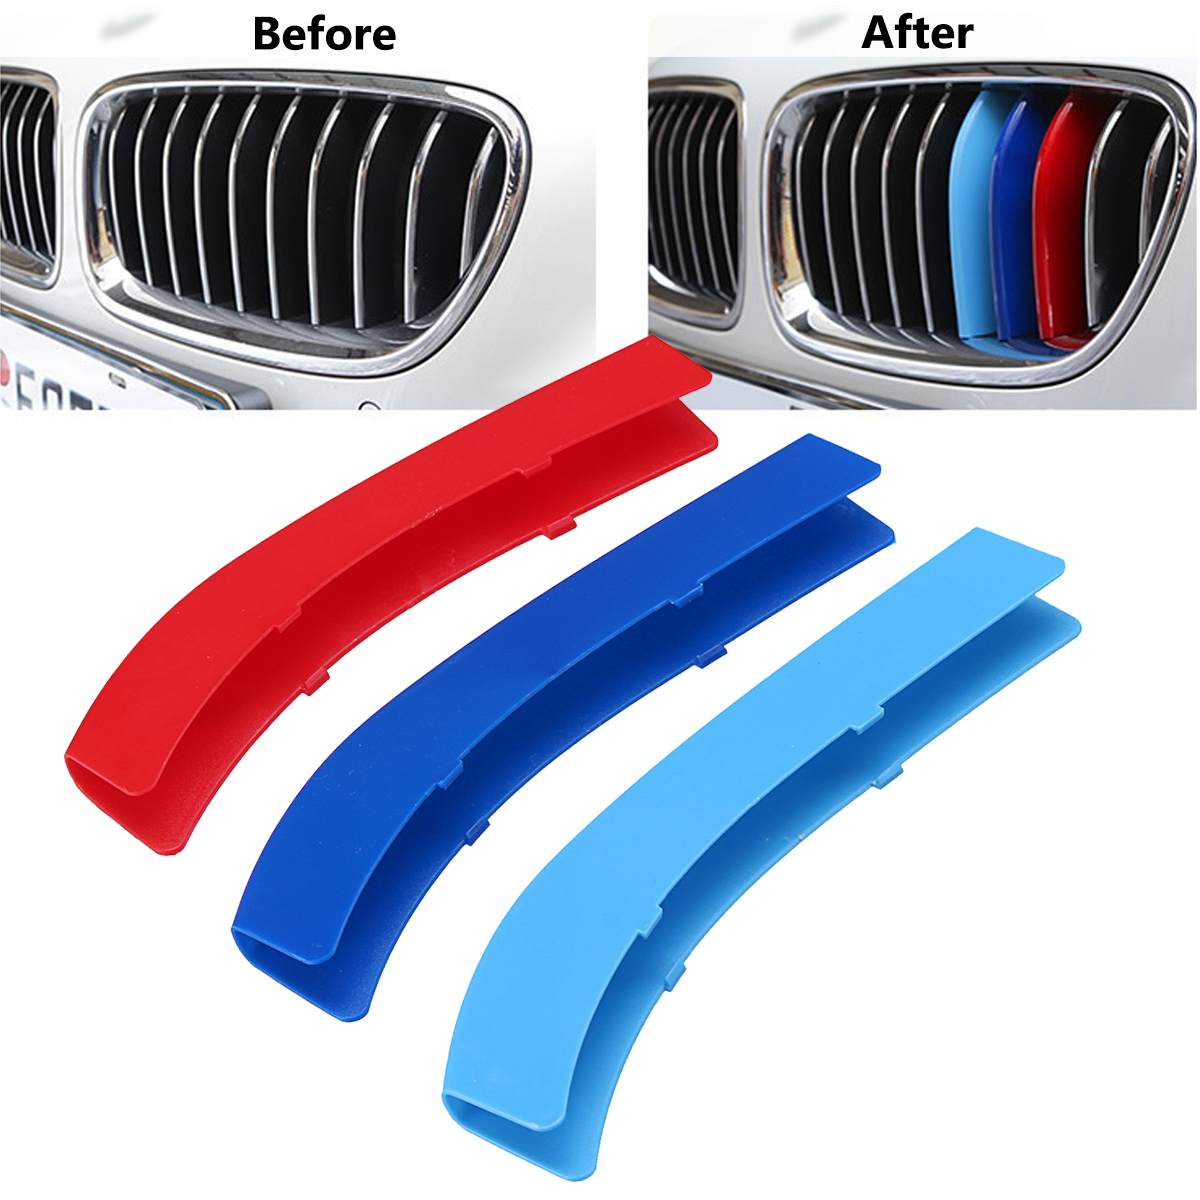 3PCS Silver Alloy Engine Start Stop Button Cover Trim For BMW F20 F21 2012-2017